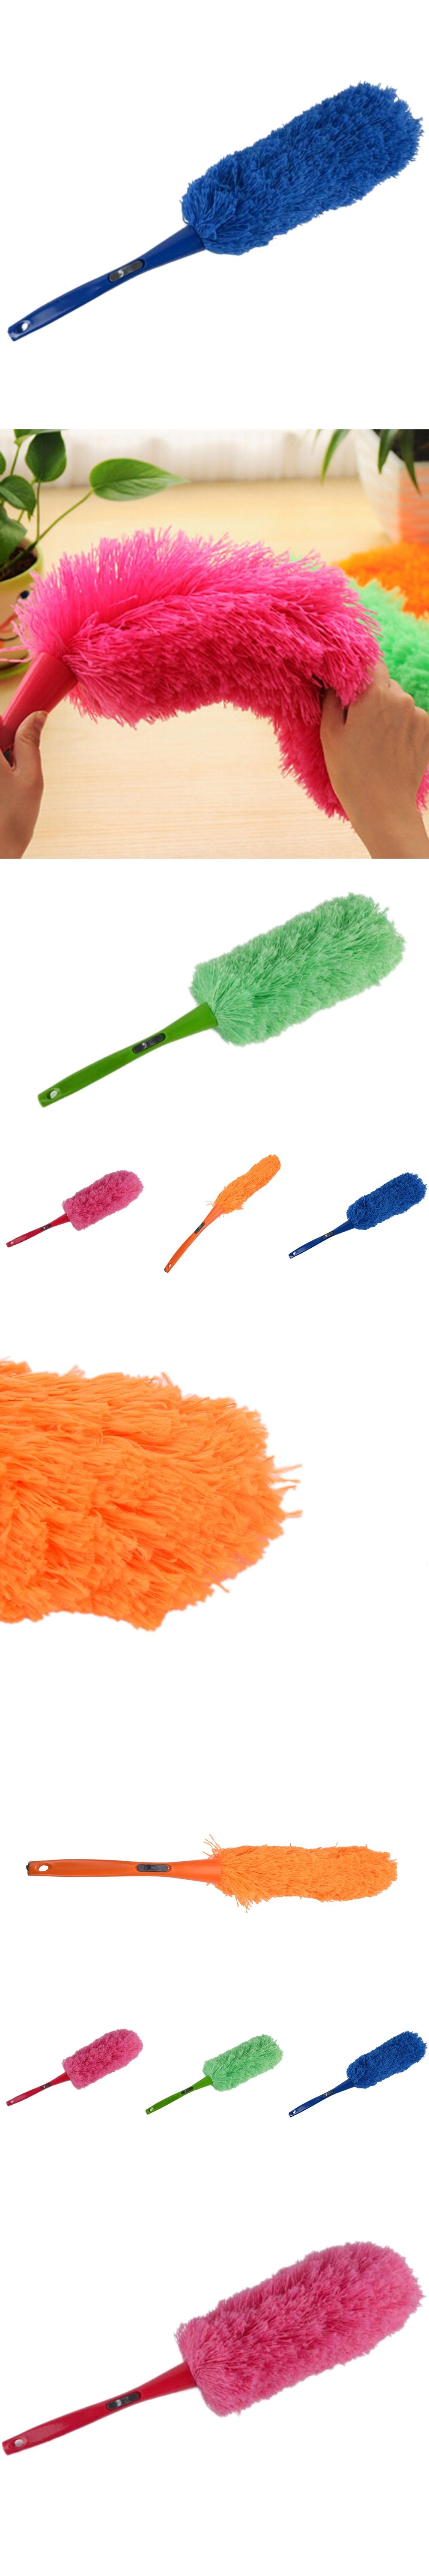 New multi function magic soft microfiber cleaning duster dust